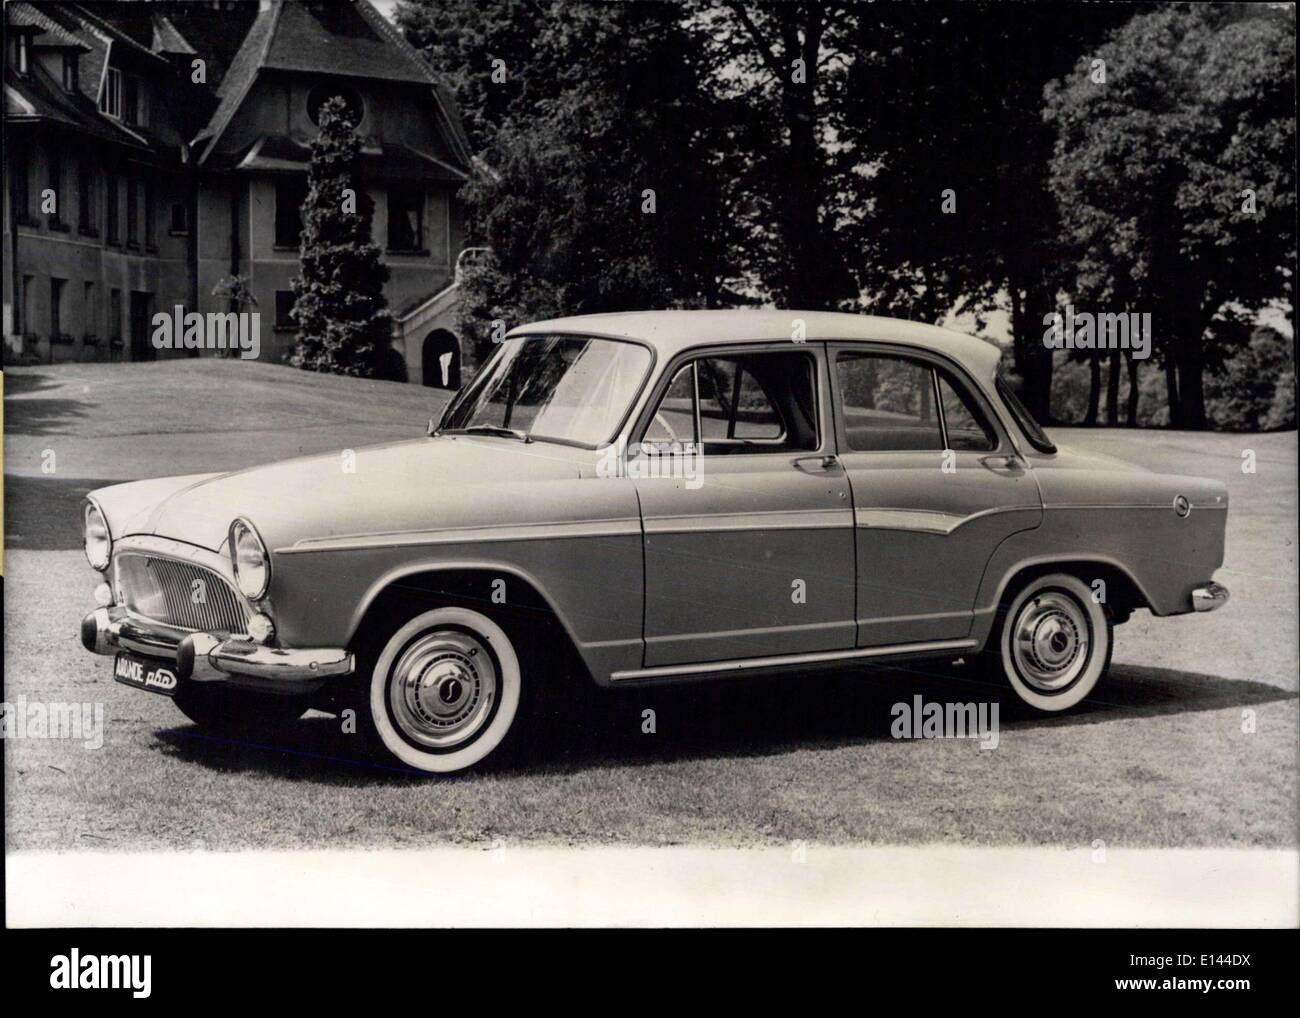 Apr. 04, 2012 - Simca Society Will ate a New Car Succeeding to the Previous ''Aronie'' It is Called ''p.60' Stock Photo